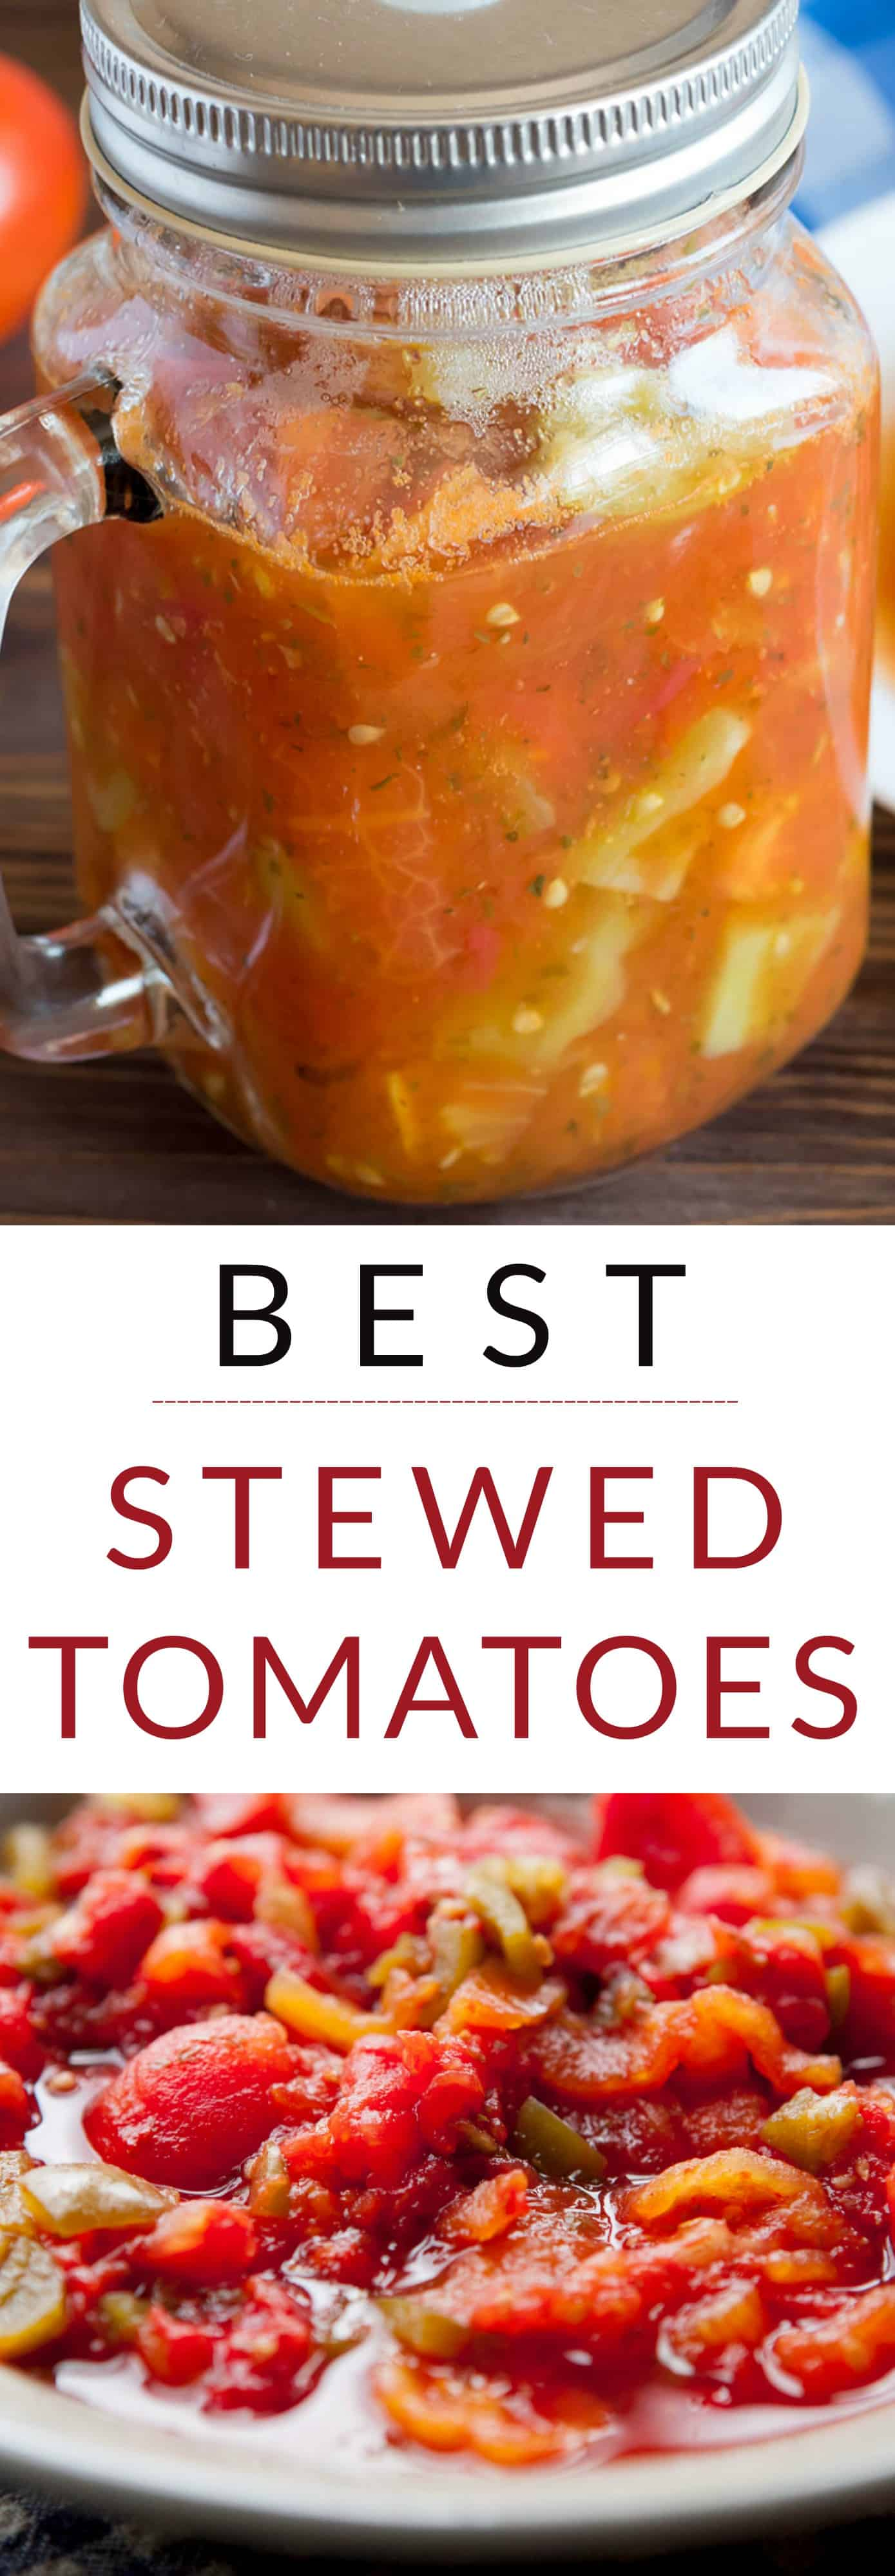 The BEST Stewed Tomatoes Ever recipe! This easy to make recipe simmers tomatoes for 30 minutes to make homemade stewed tomatoes that can be served as a dinner side dish or can be canned. This how to make recipe shows you how easy they are to make! Find out why everyone considers them THE BEST! We always use this as a canning recipe for our Summer garden tomatoes!